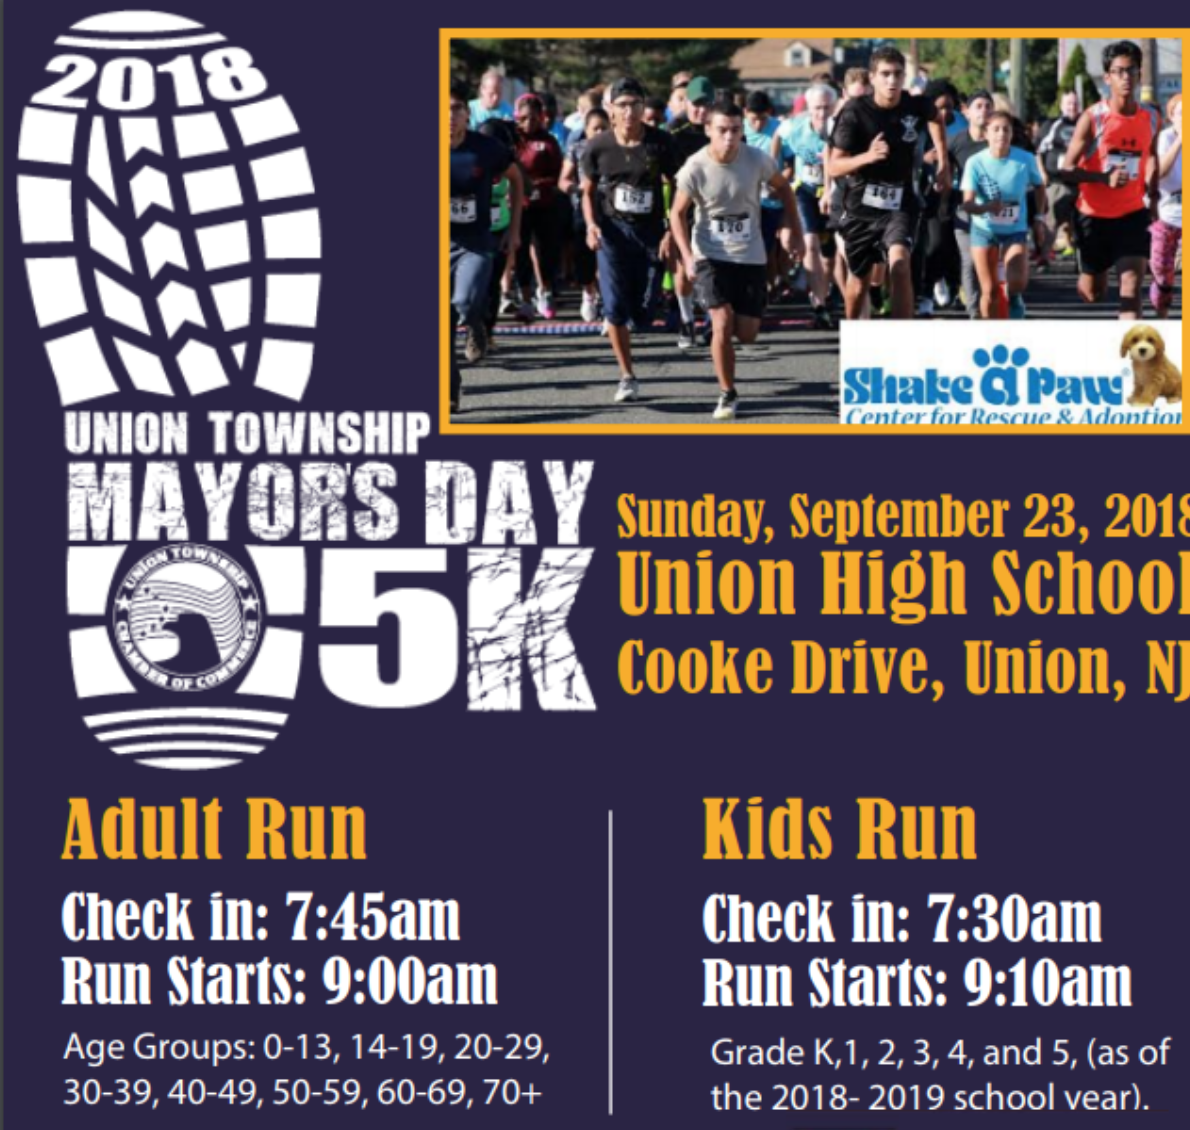 Union Chamber Kicks off Mayor's Day 5K